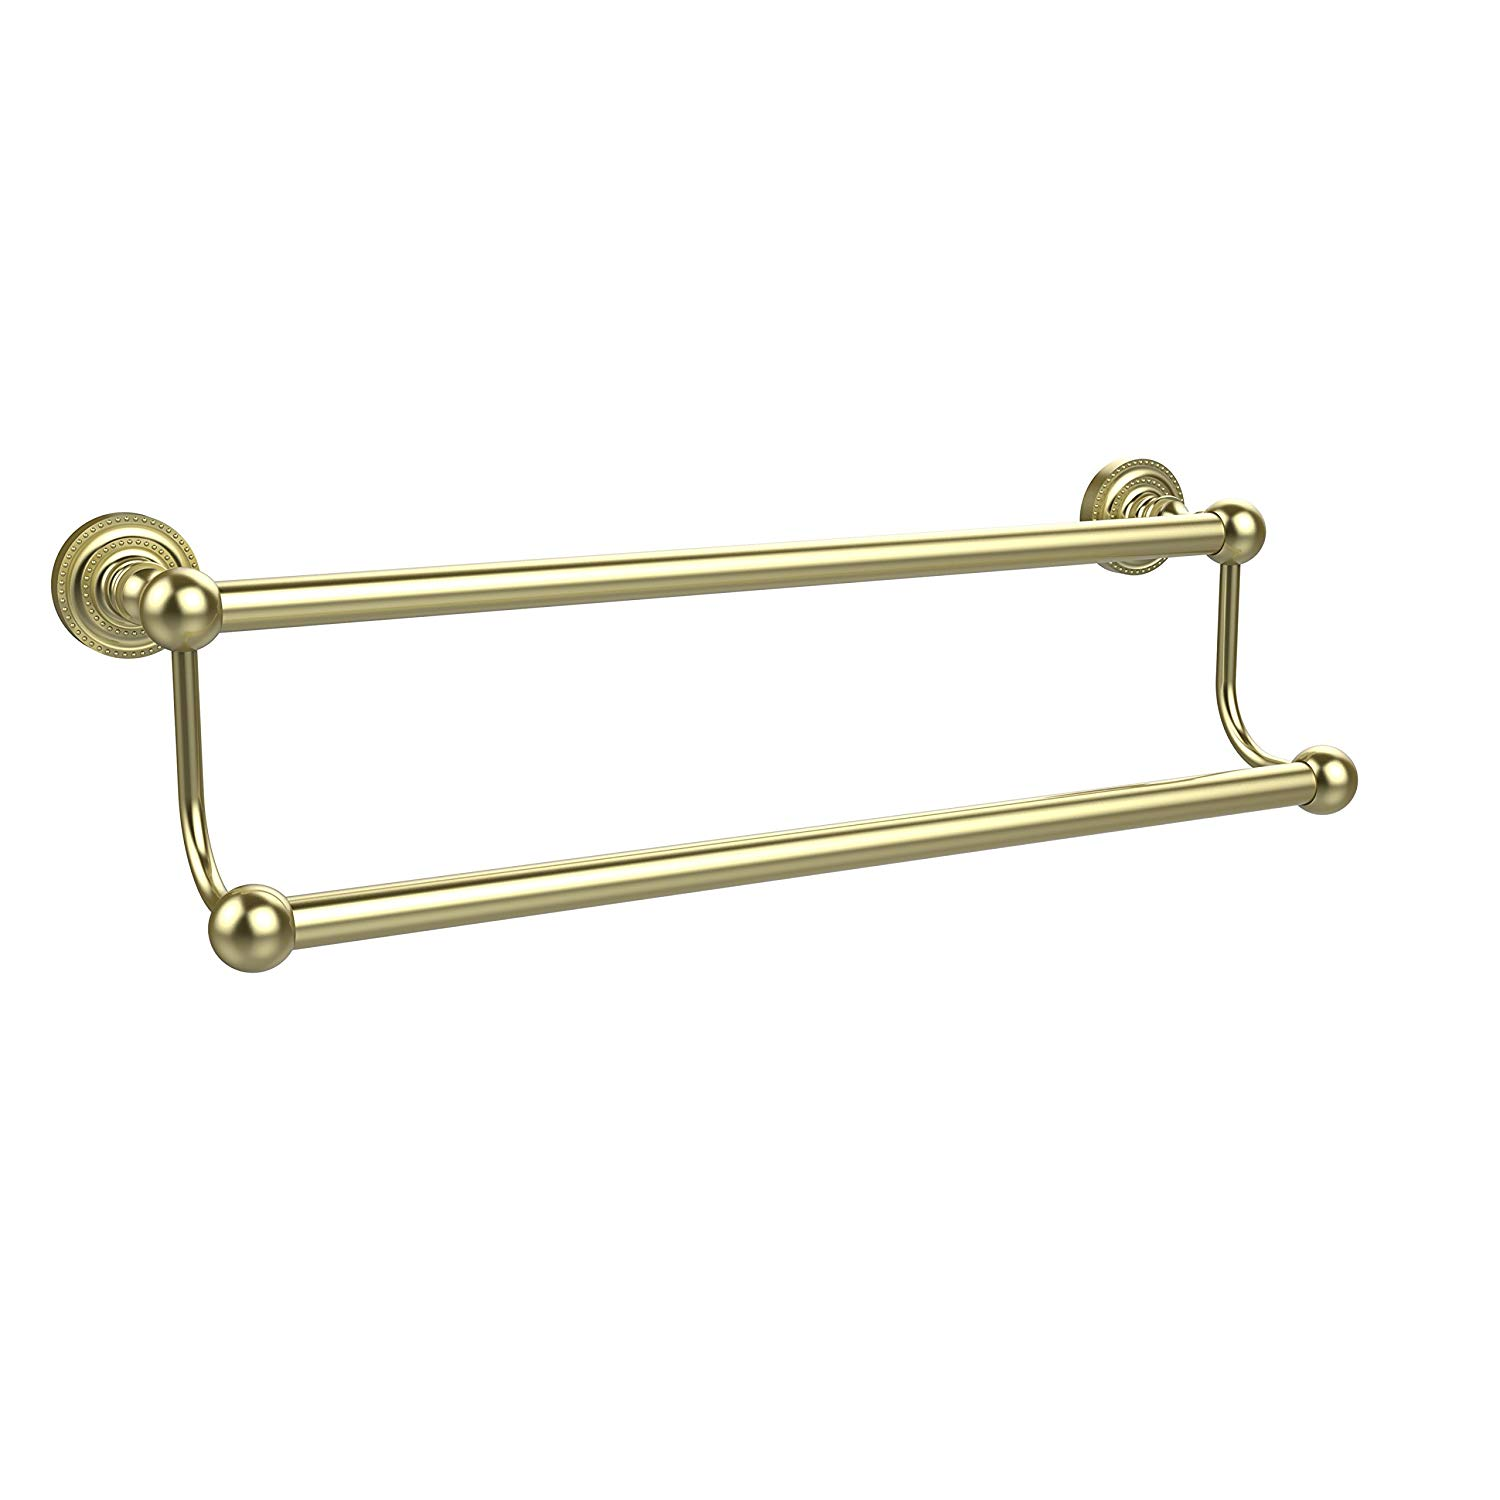 "Allied Brass DT-72/30-SBR 30"" Double Towel Bar Satin Brass"